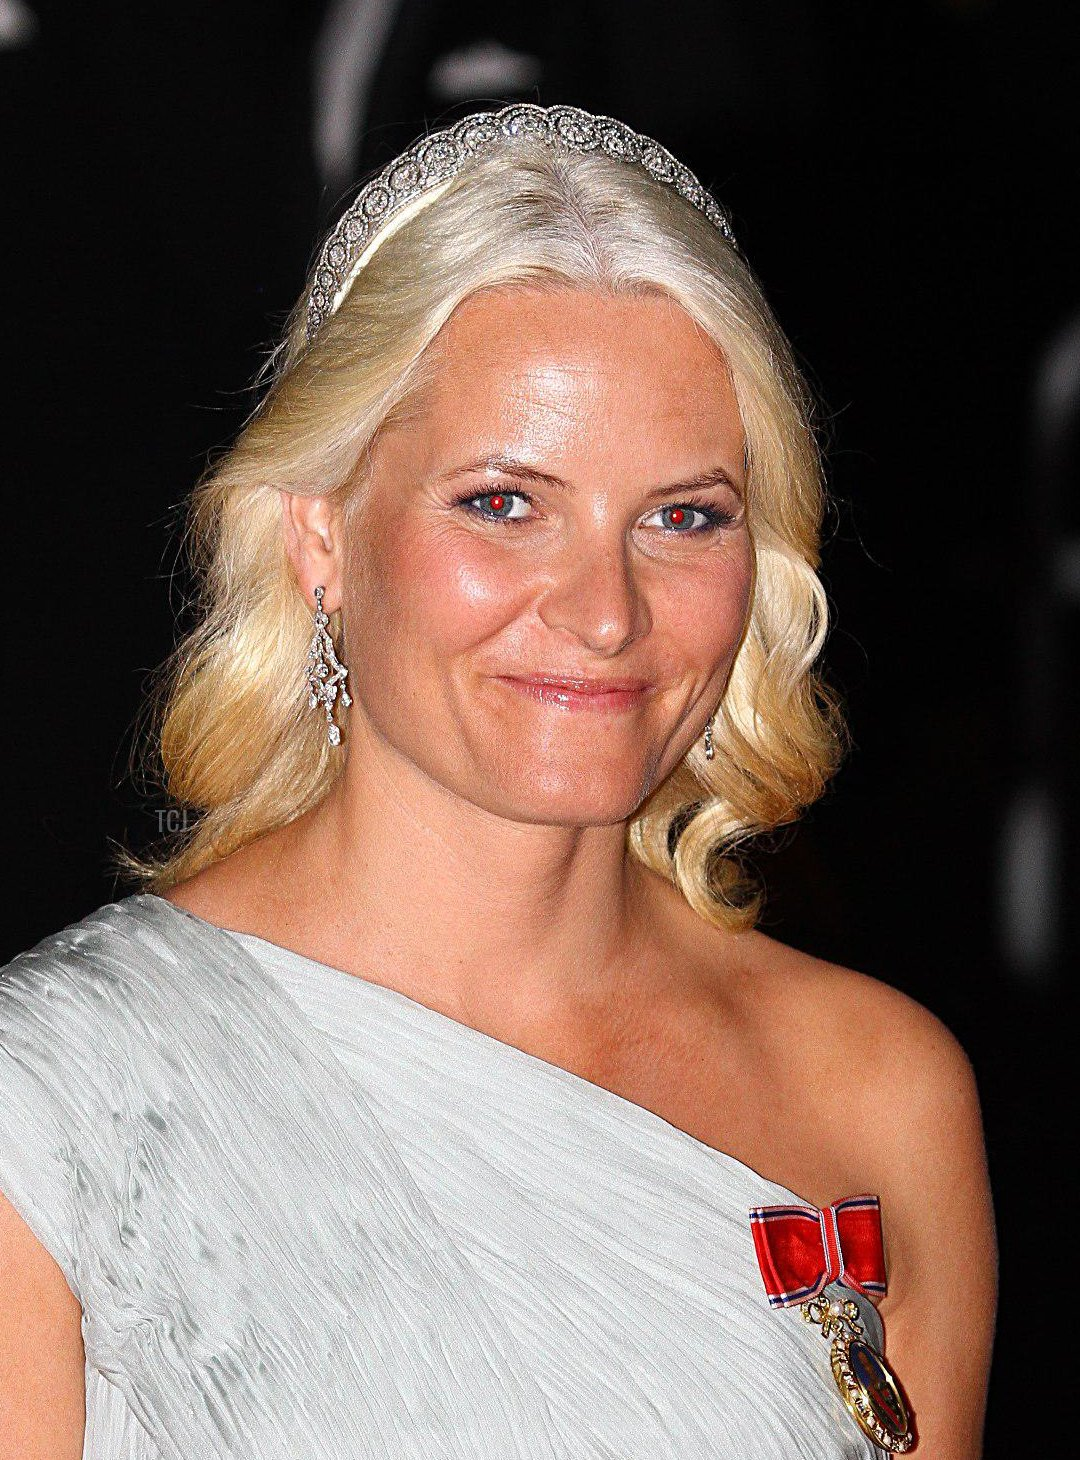 Princess Mette Marit arriving for the official dinner for Prince Albert II of Monaco and Charlene Wittstock at the Monte Carlo Opera House